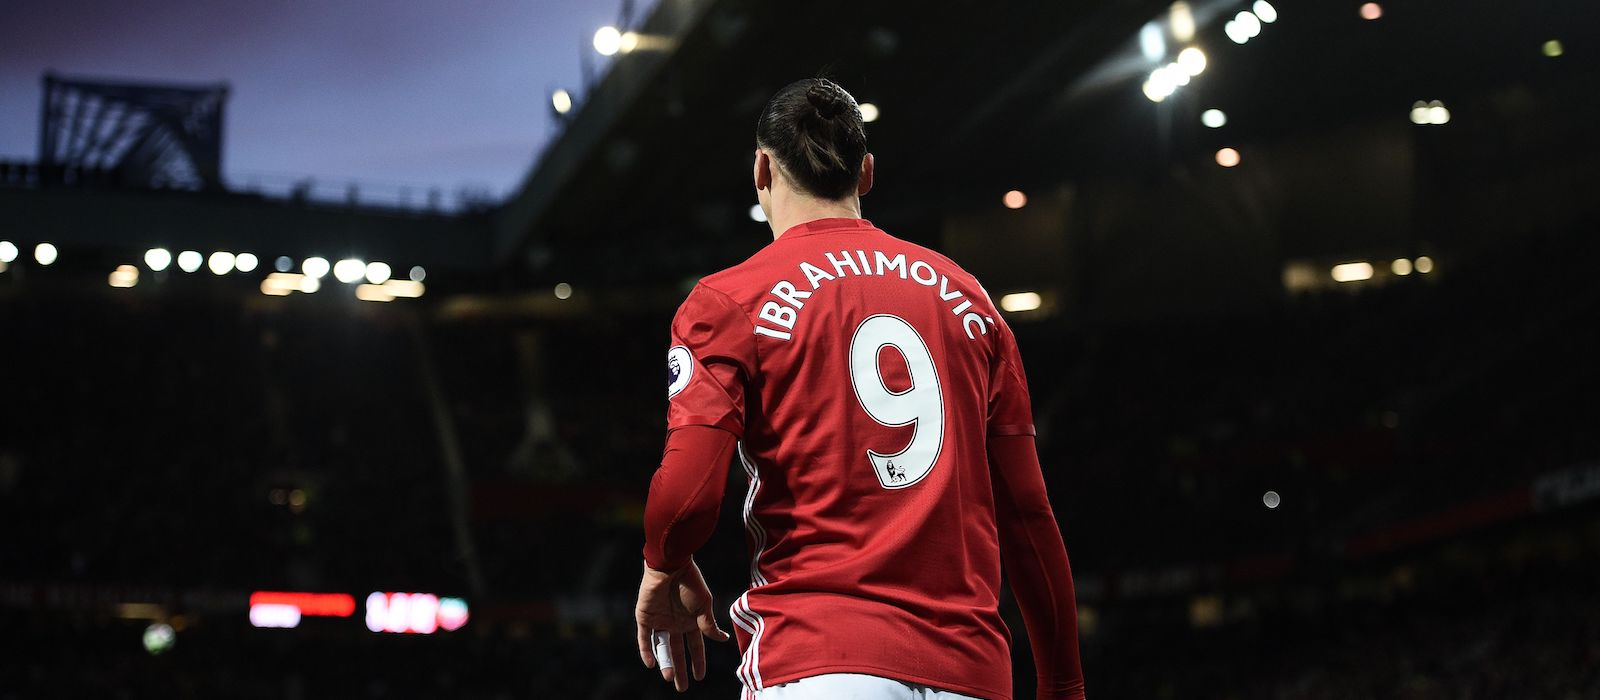 Di Marzio: Ibrahimovic out for 8-9 months with double ligament tear